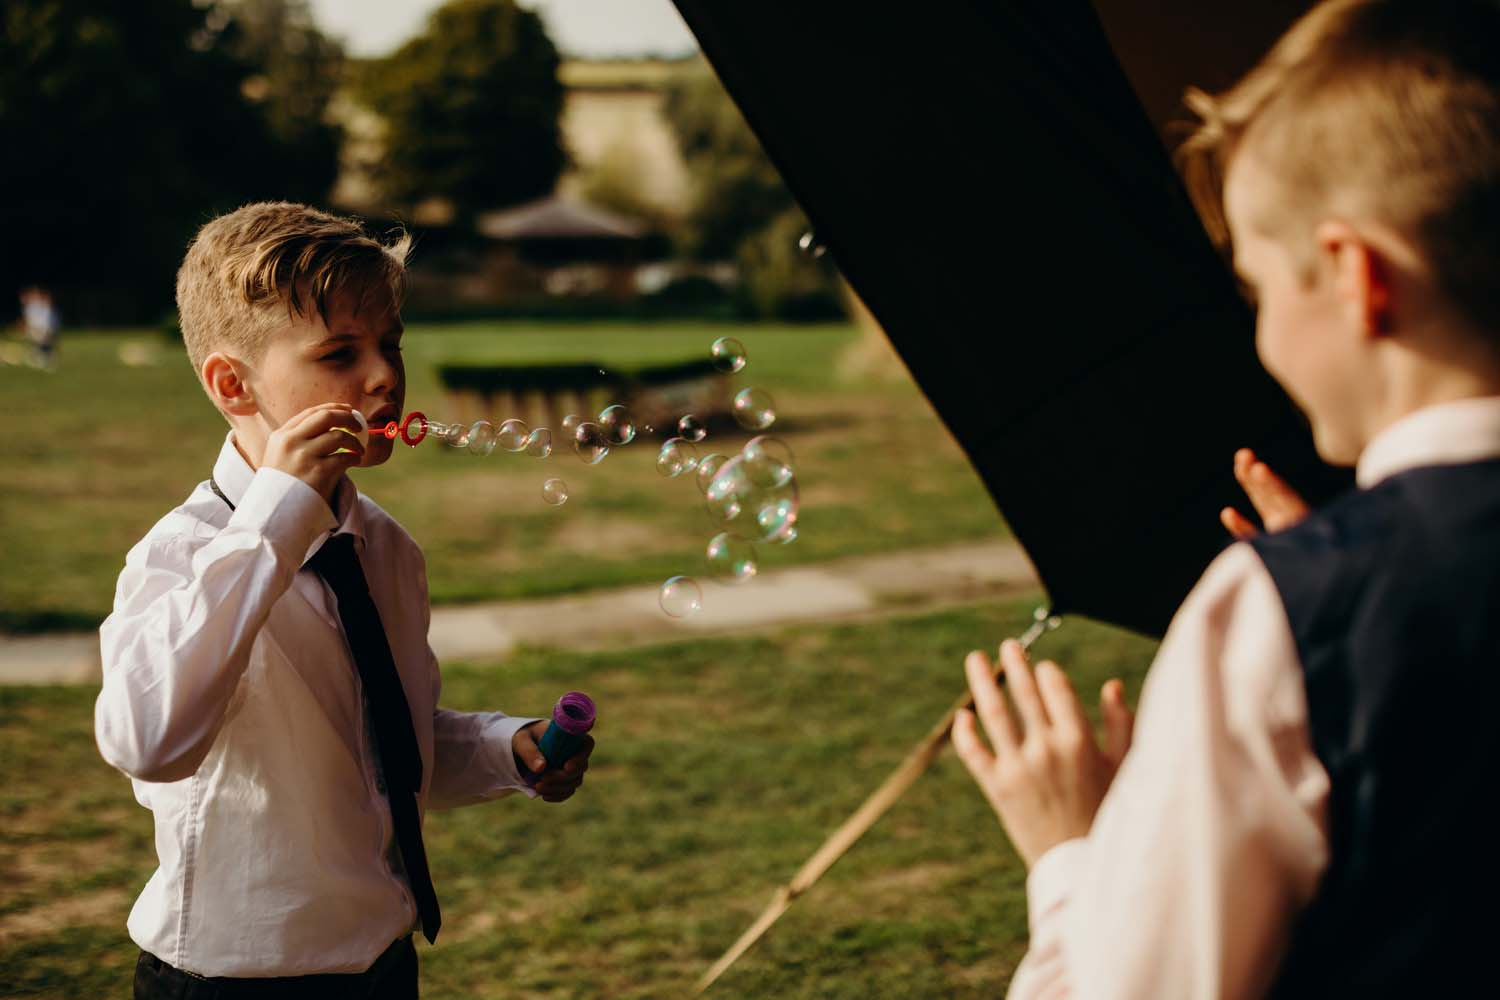 Boy blows bubbles at wedding